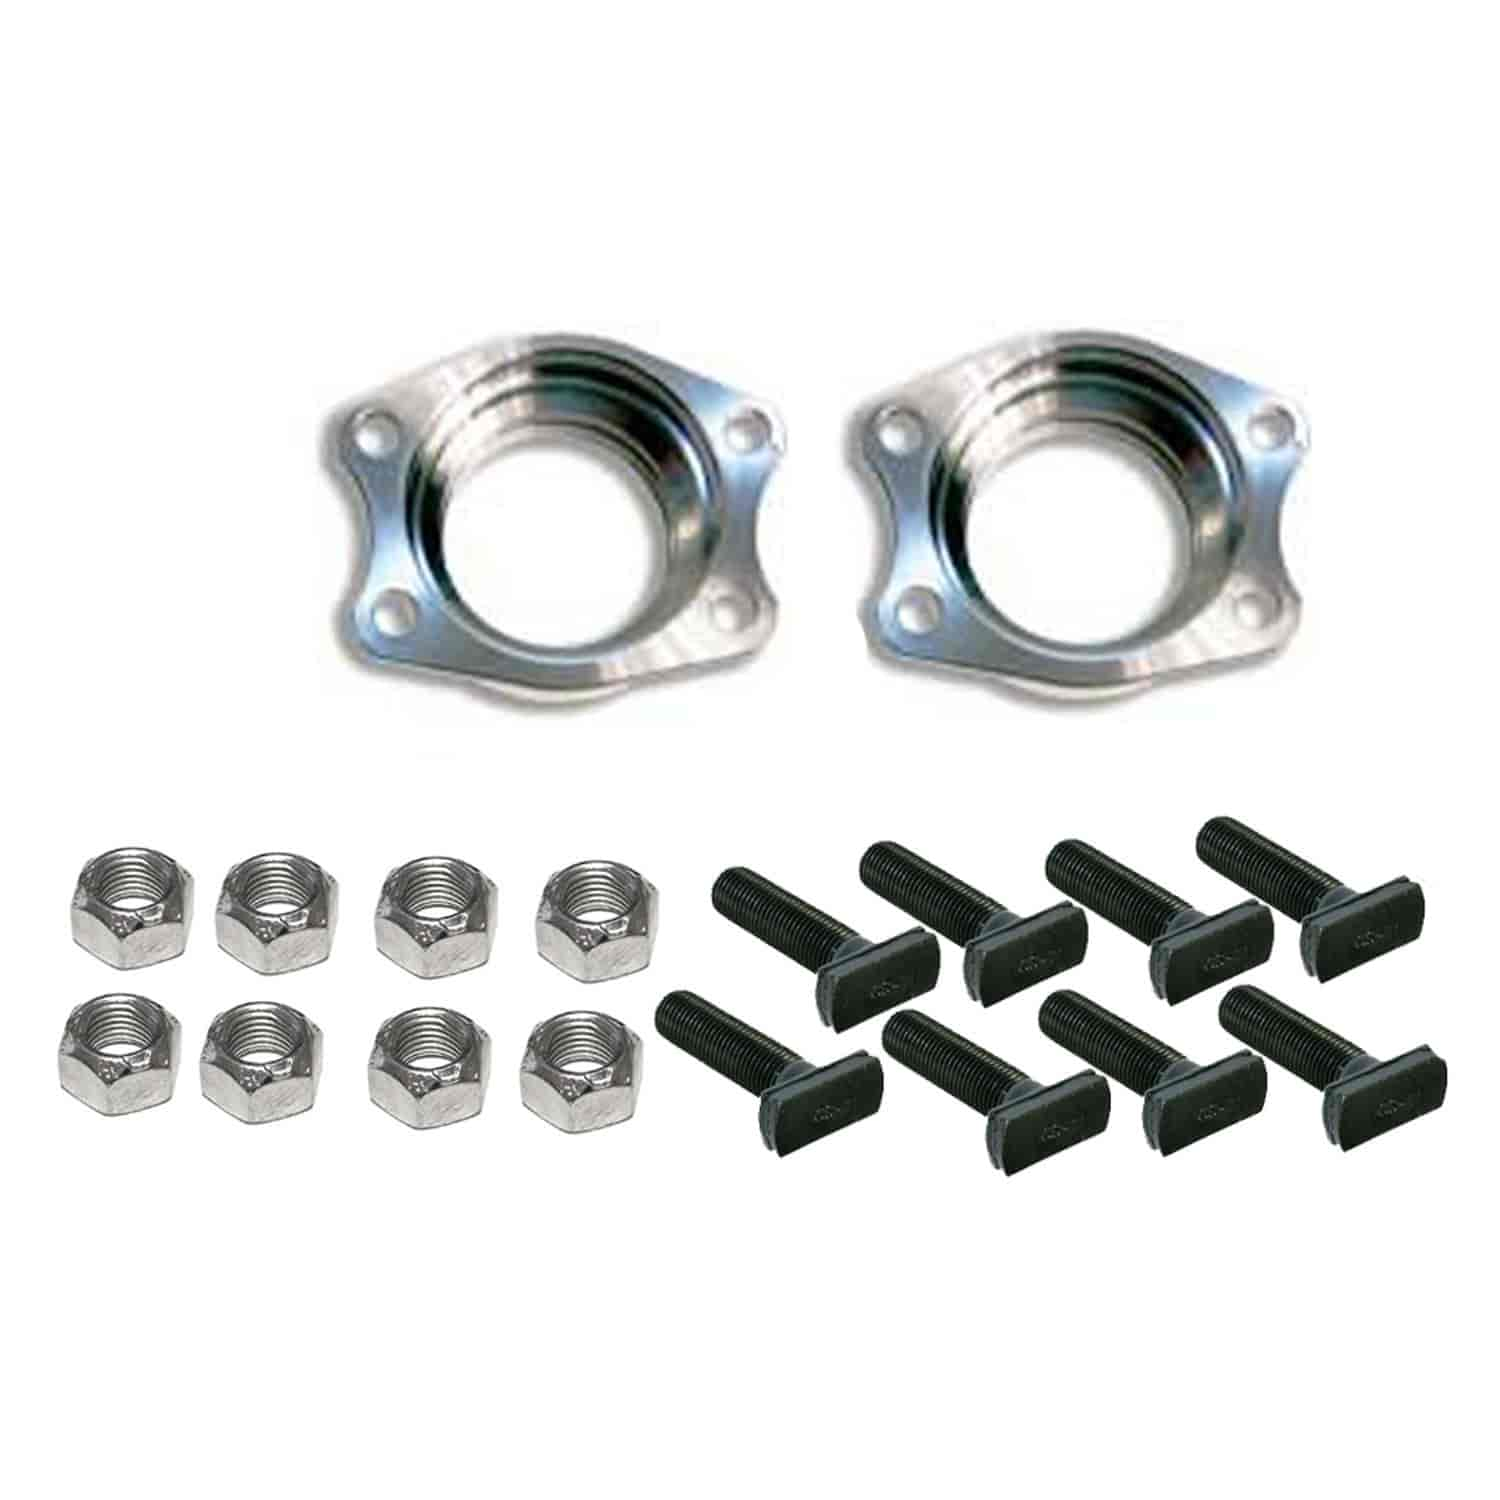 Moser Engineering 7700K: Axle Housing End Kit for 1974